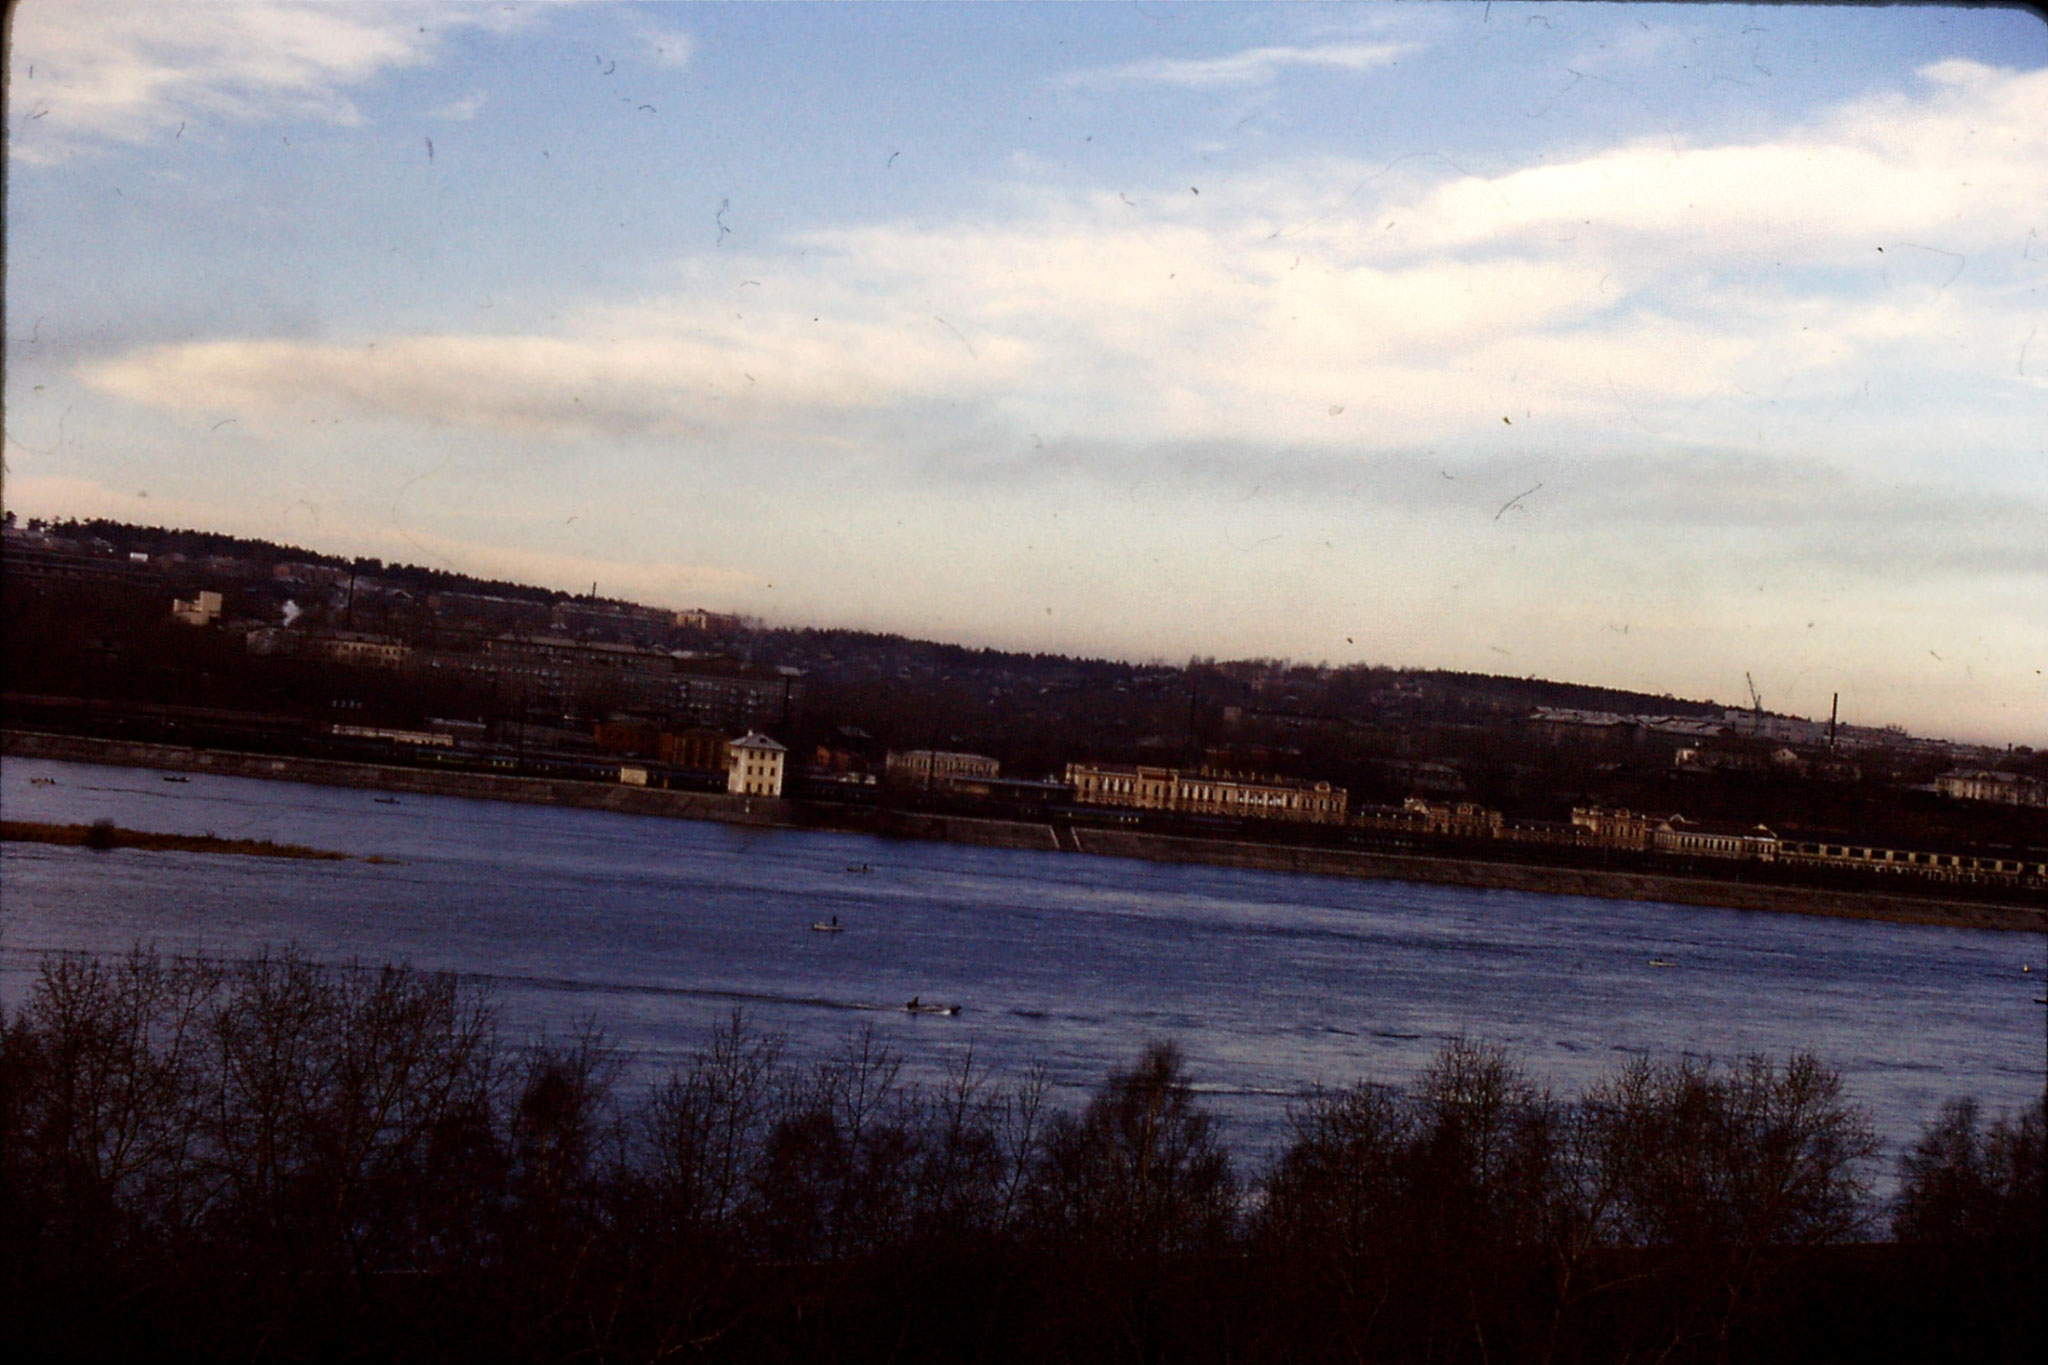 22/10/1988: 21: Irkutsk Station and river from hotel window